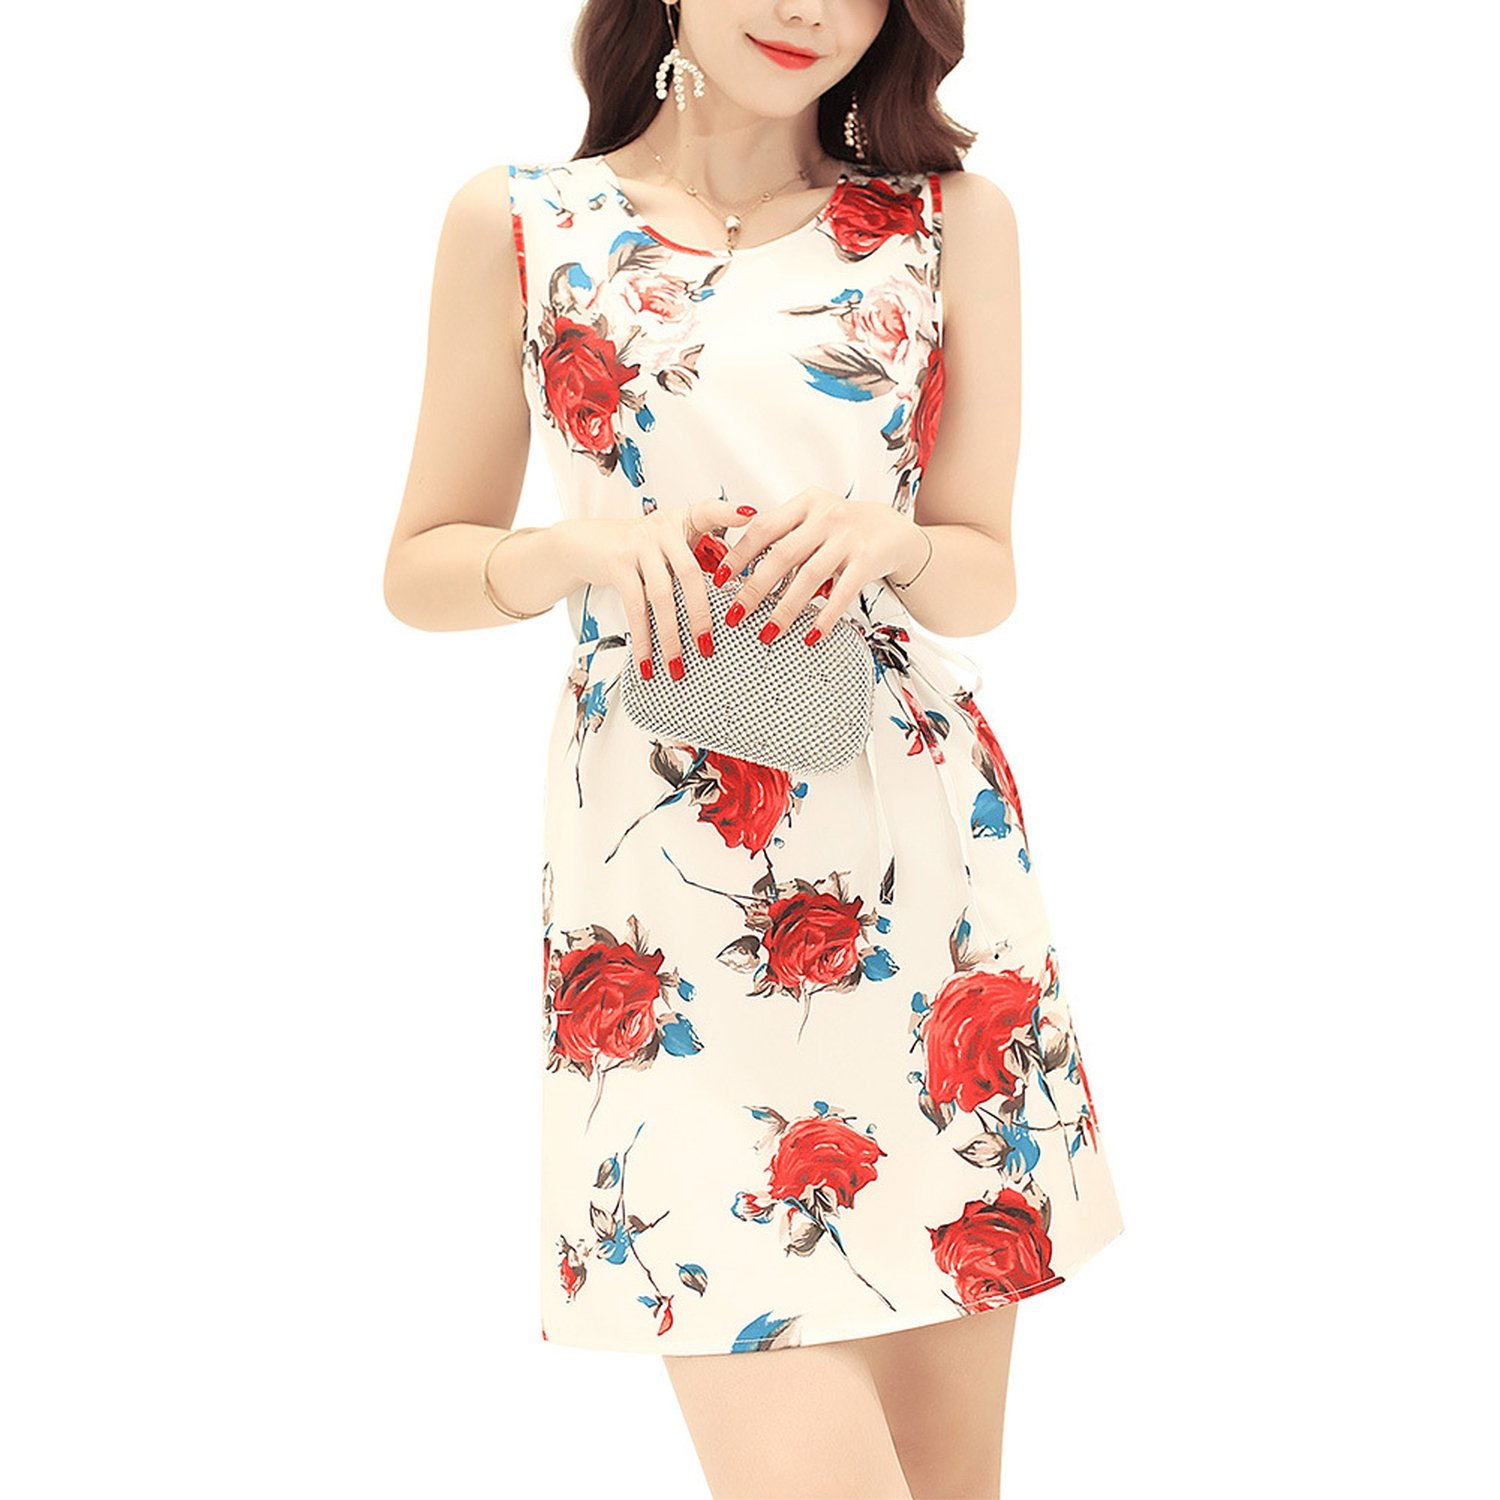 ff77ec0e60 2018 Women s New Amazon Wish Ebay Cross-Border Explosion Models Rose Print  Vest Dress at Amazon Women s Clothing store